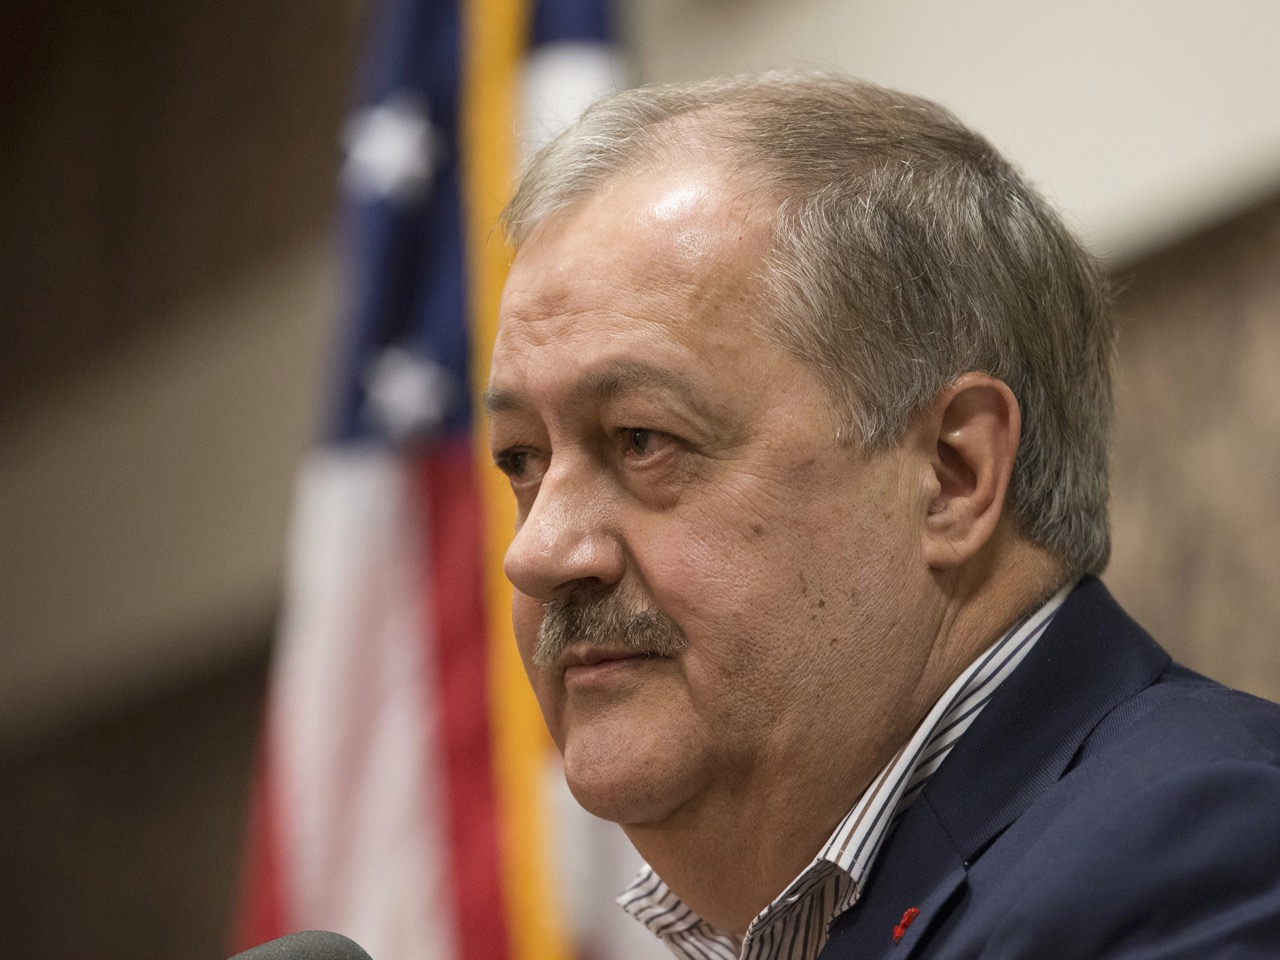 On Twitter, Trump Urges West Virginians to Vote Against Blankenship